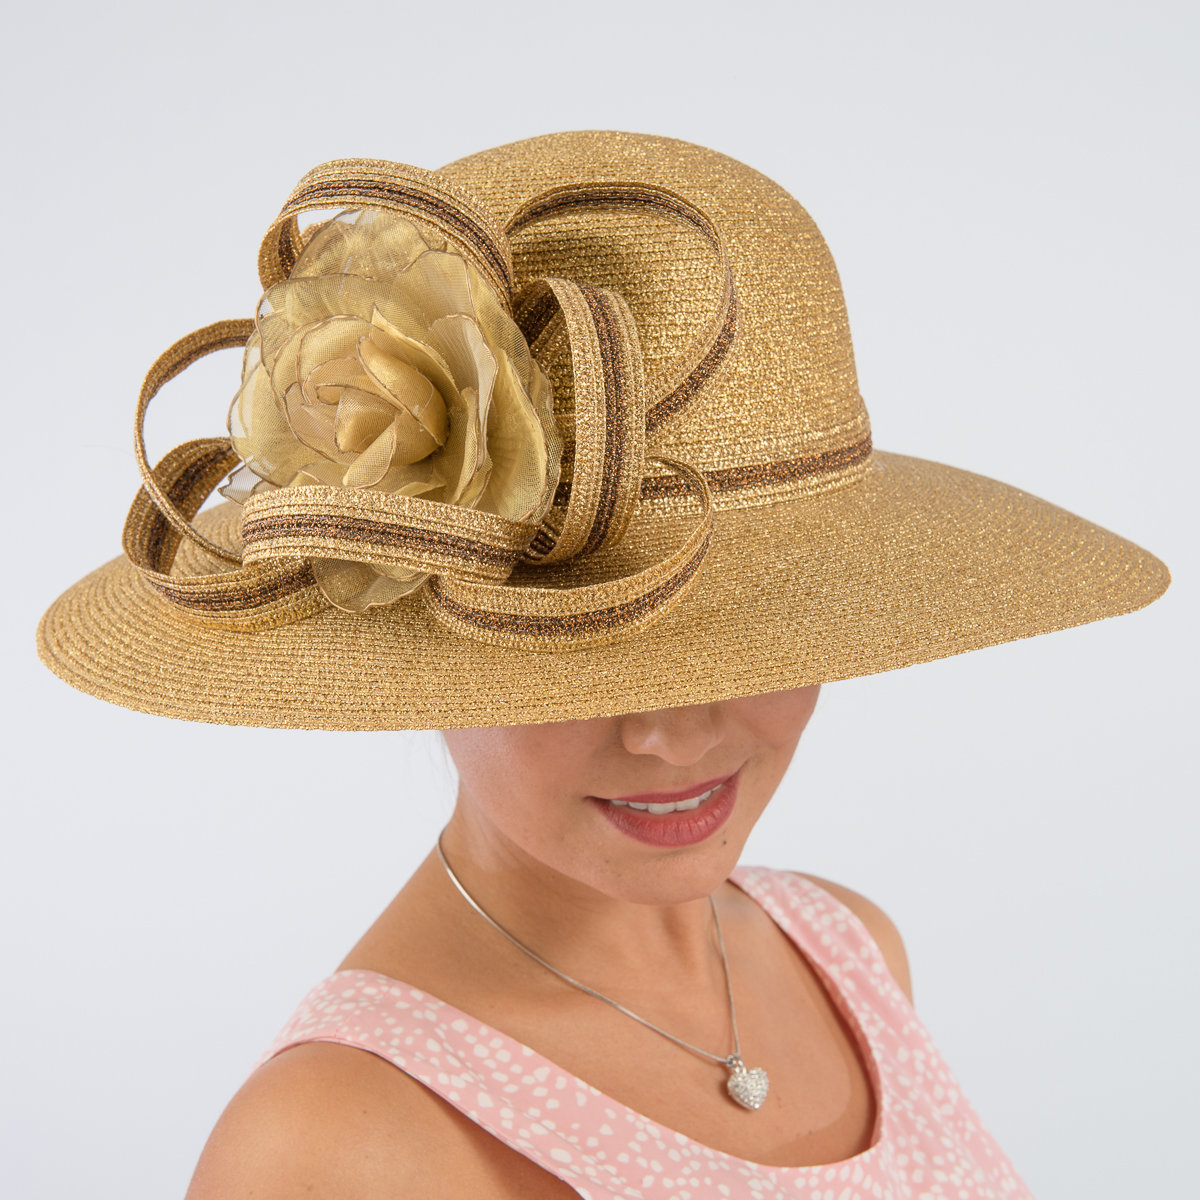 daddbd20 Gold-Copper Metallic Swinger Hat-Floral Hats-331763-GD.CP- Sun ...